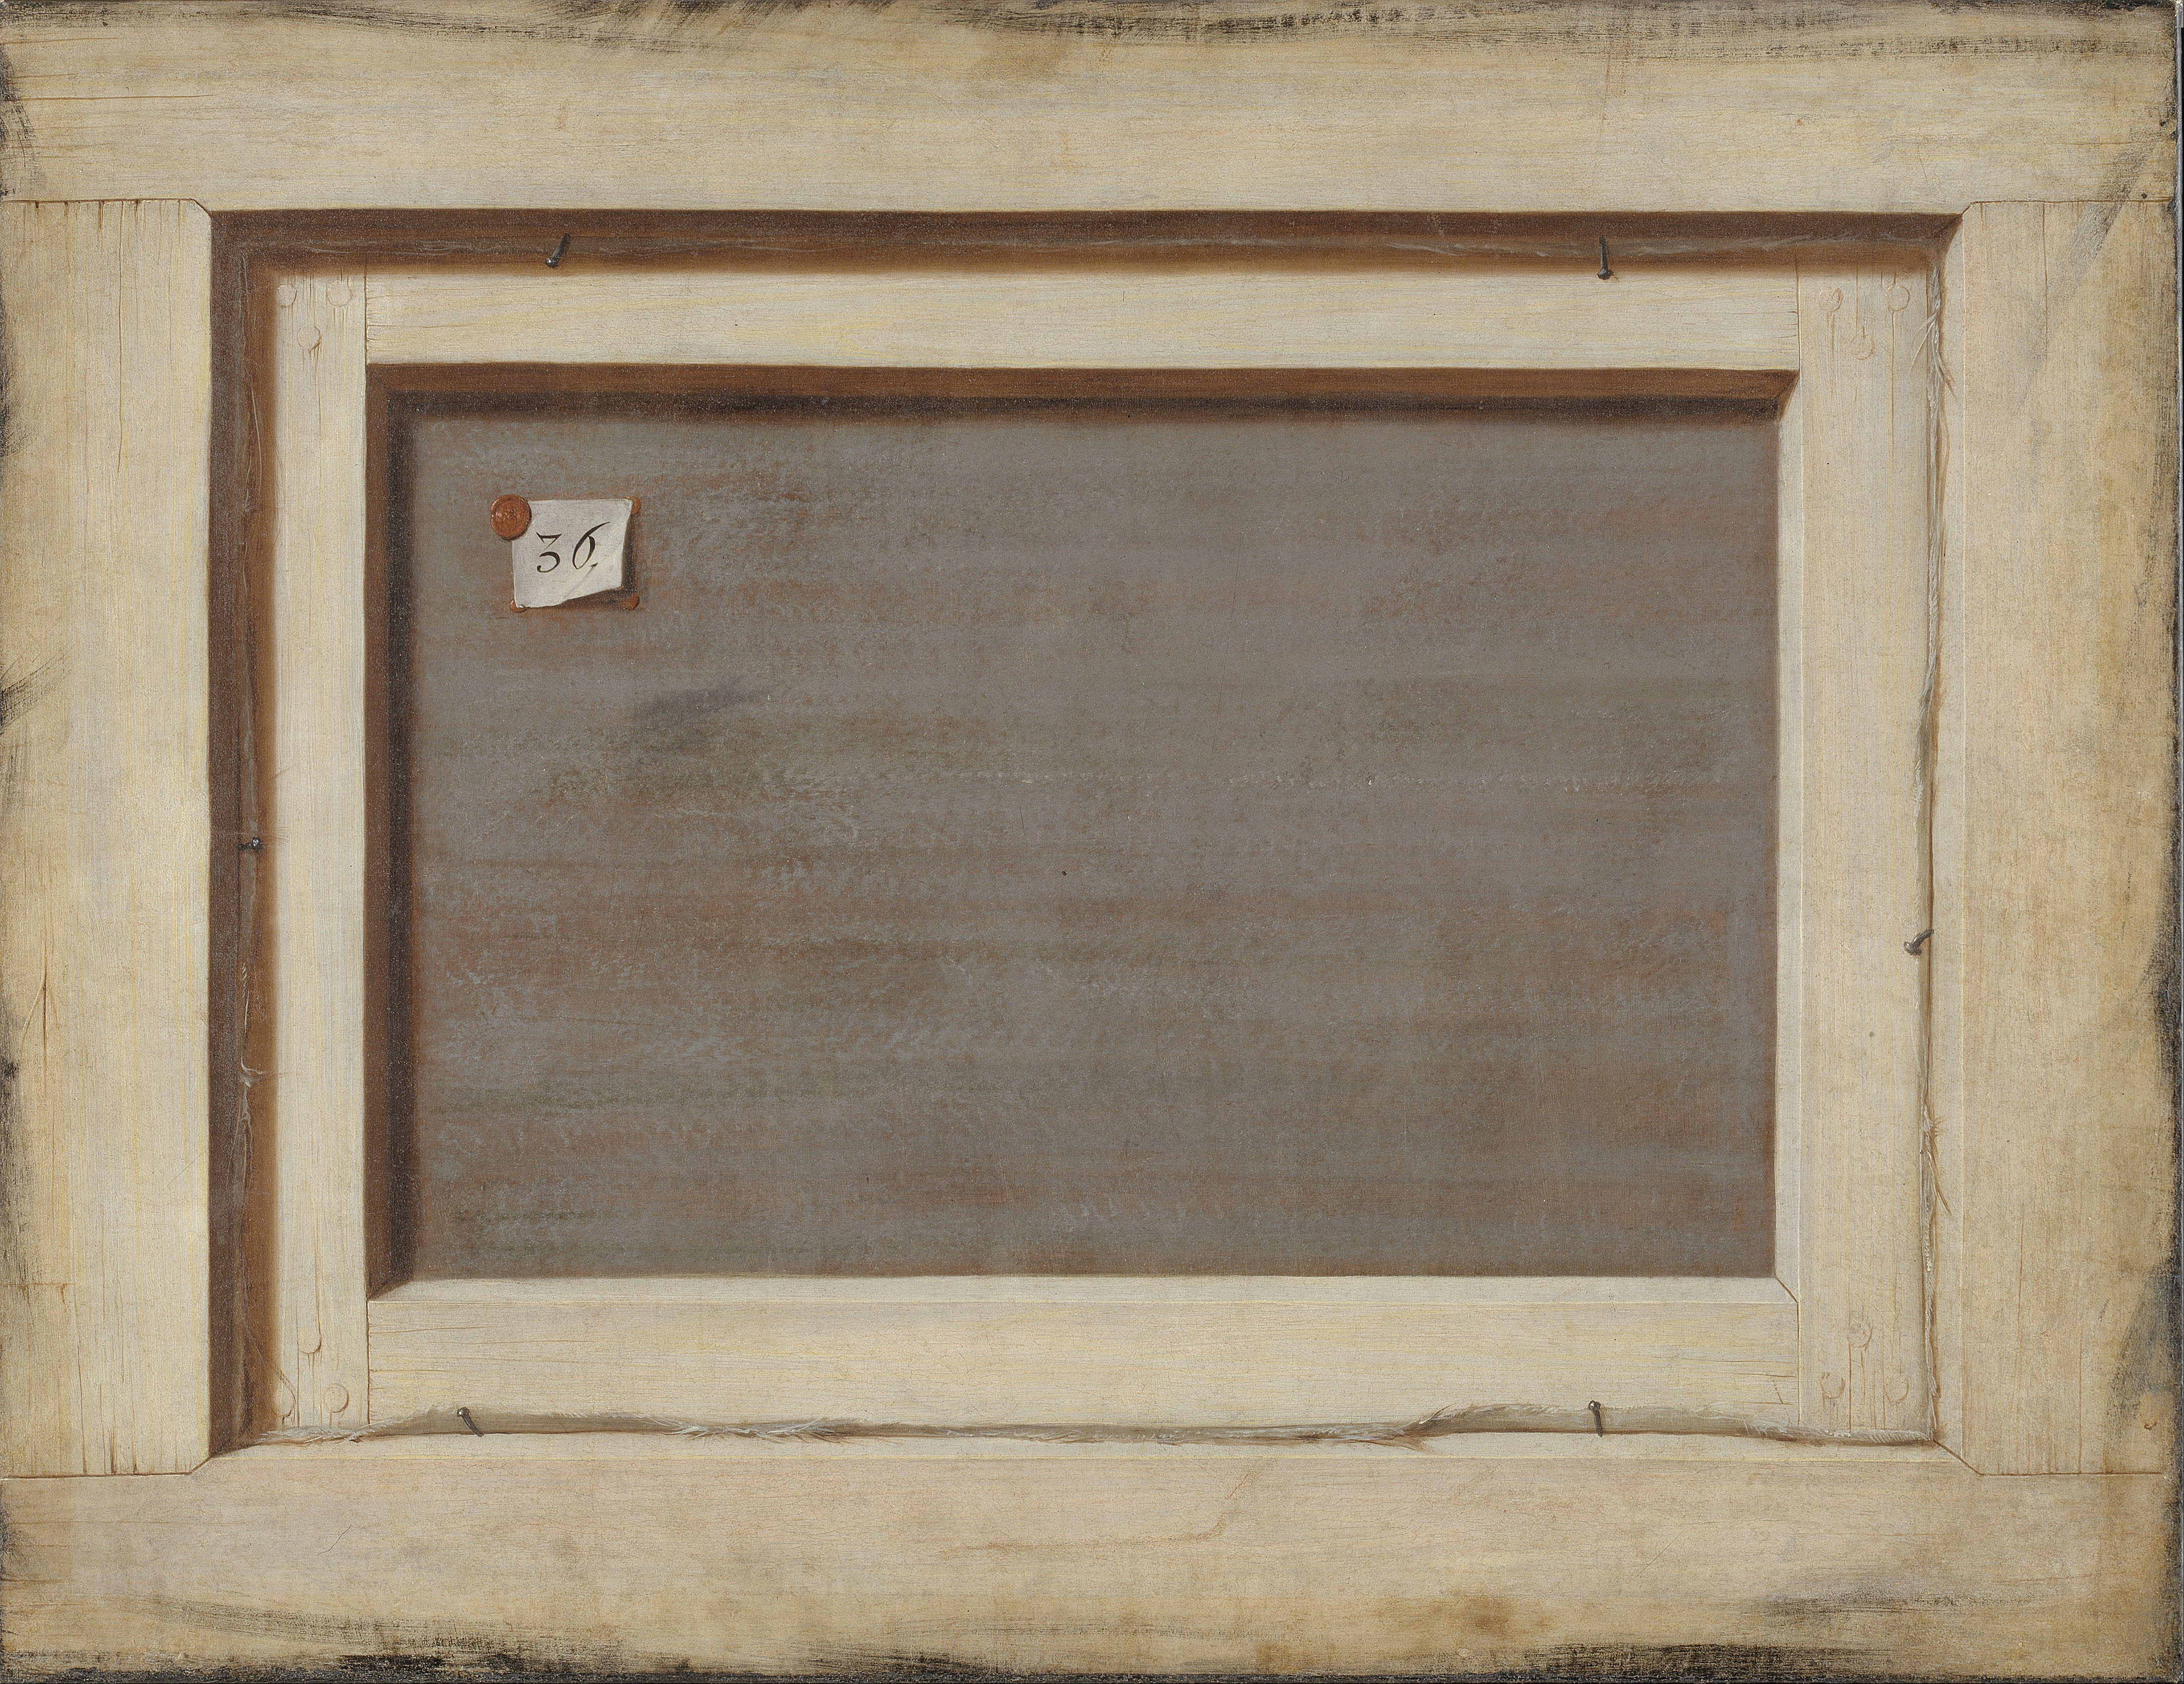 Cornelius Norbertus Gijsbrechts Trompe loeil. The Reverse of a Framed Painting